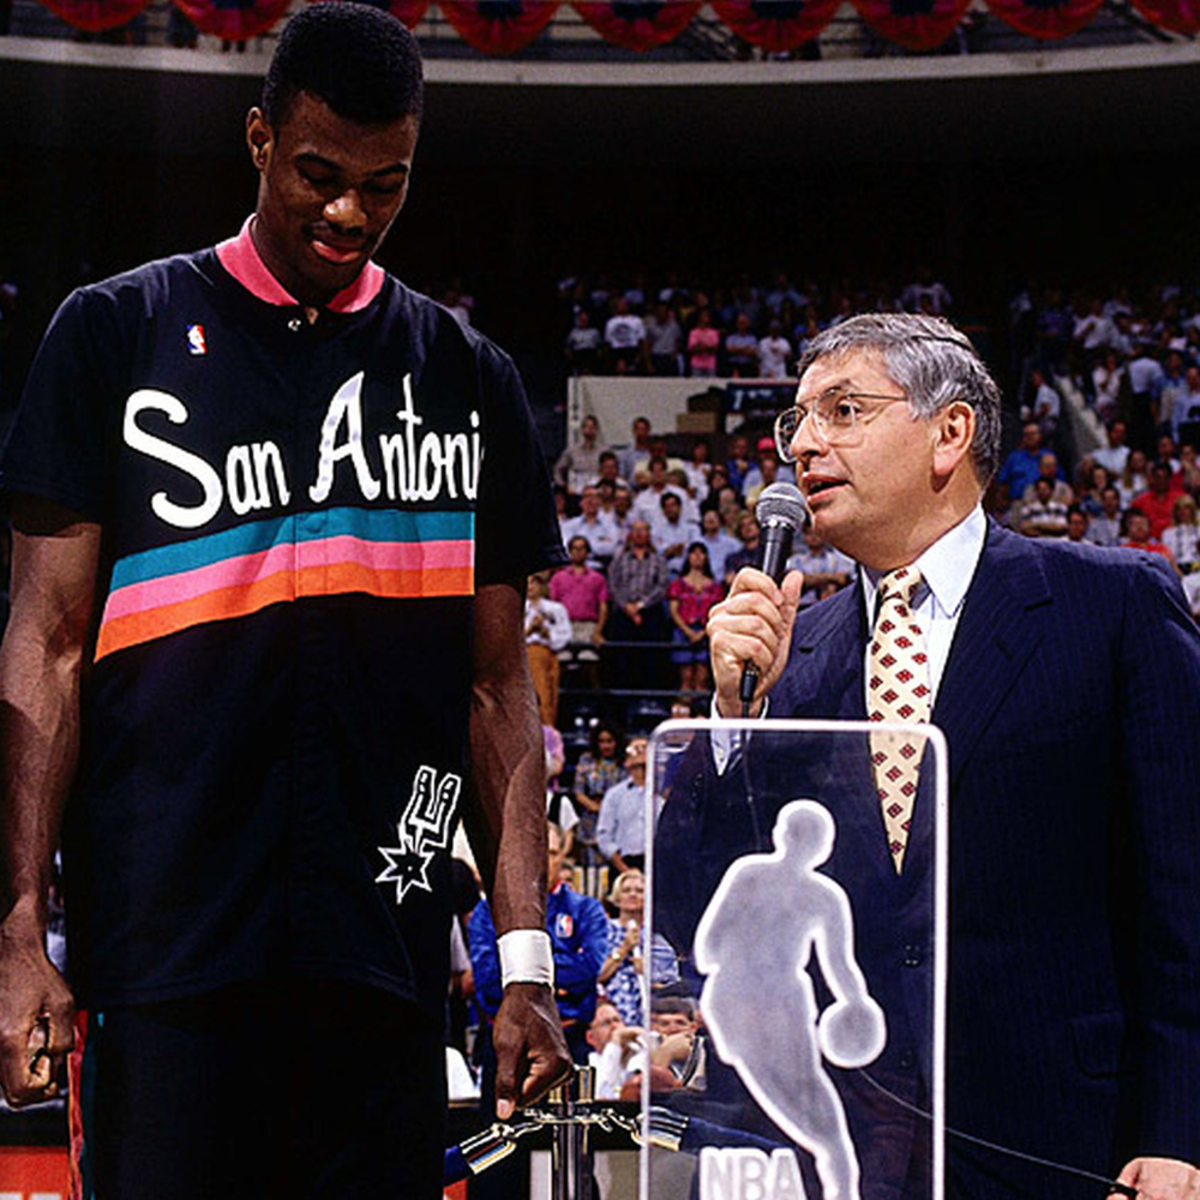 David Robinson receiving an award.